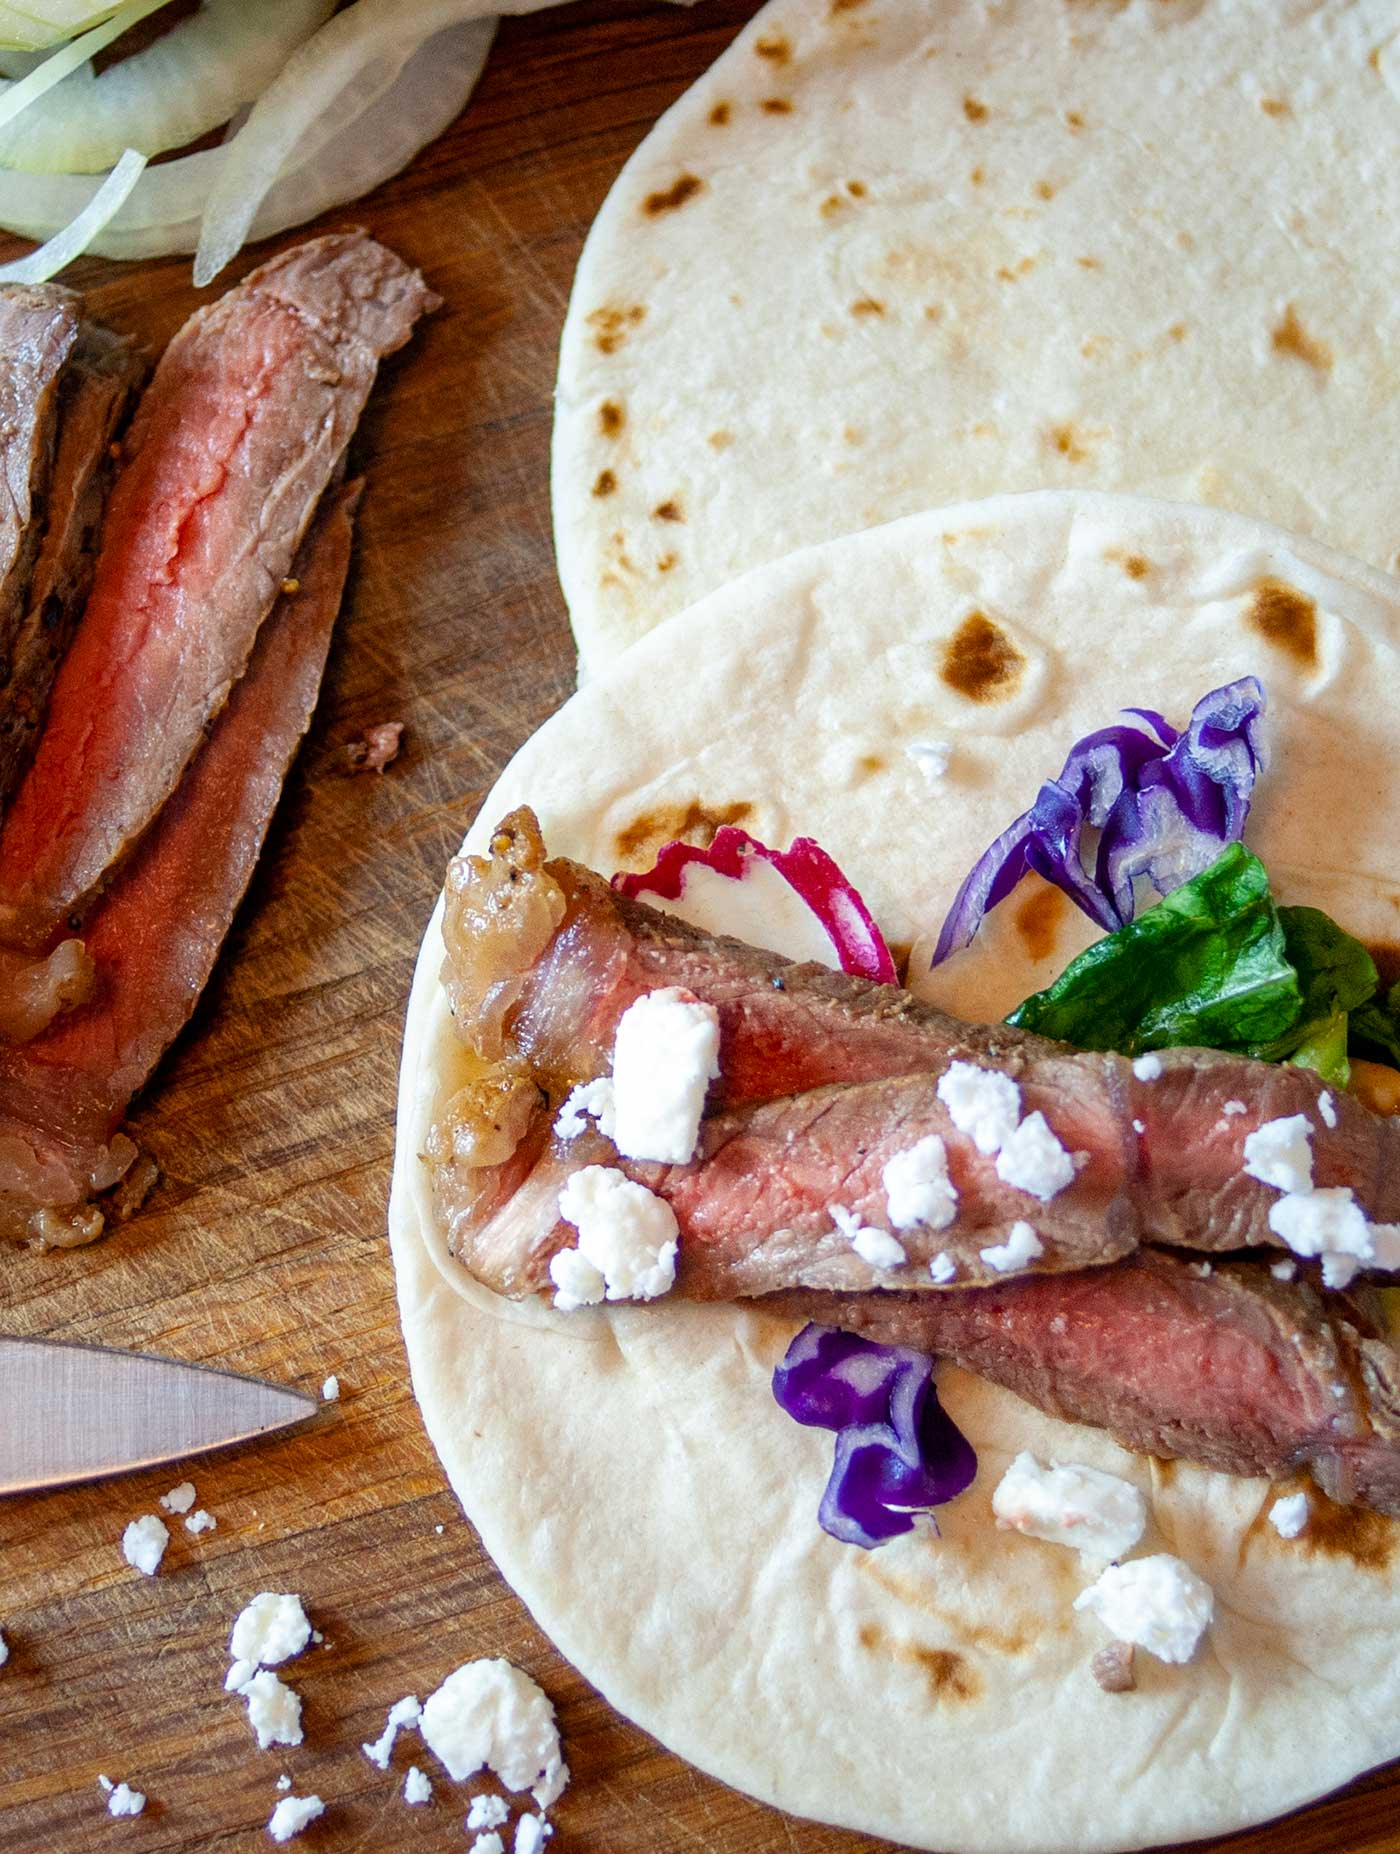 Steak and Feta tacos are perfect for a quick weeknight meal or for a weekend BBQ meal hot off the grill!